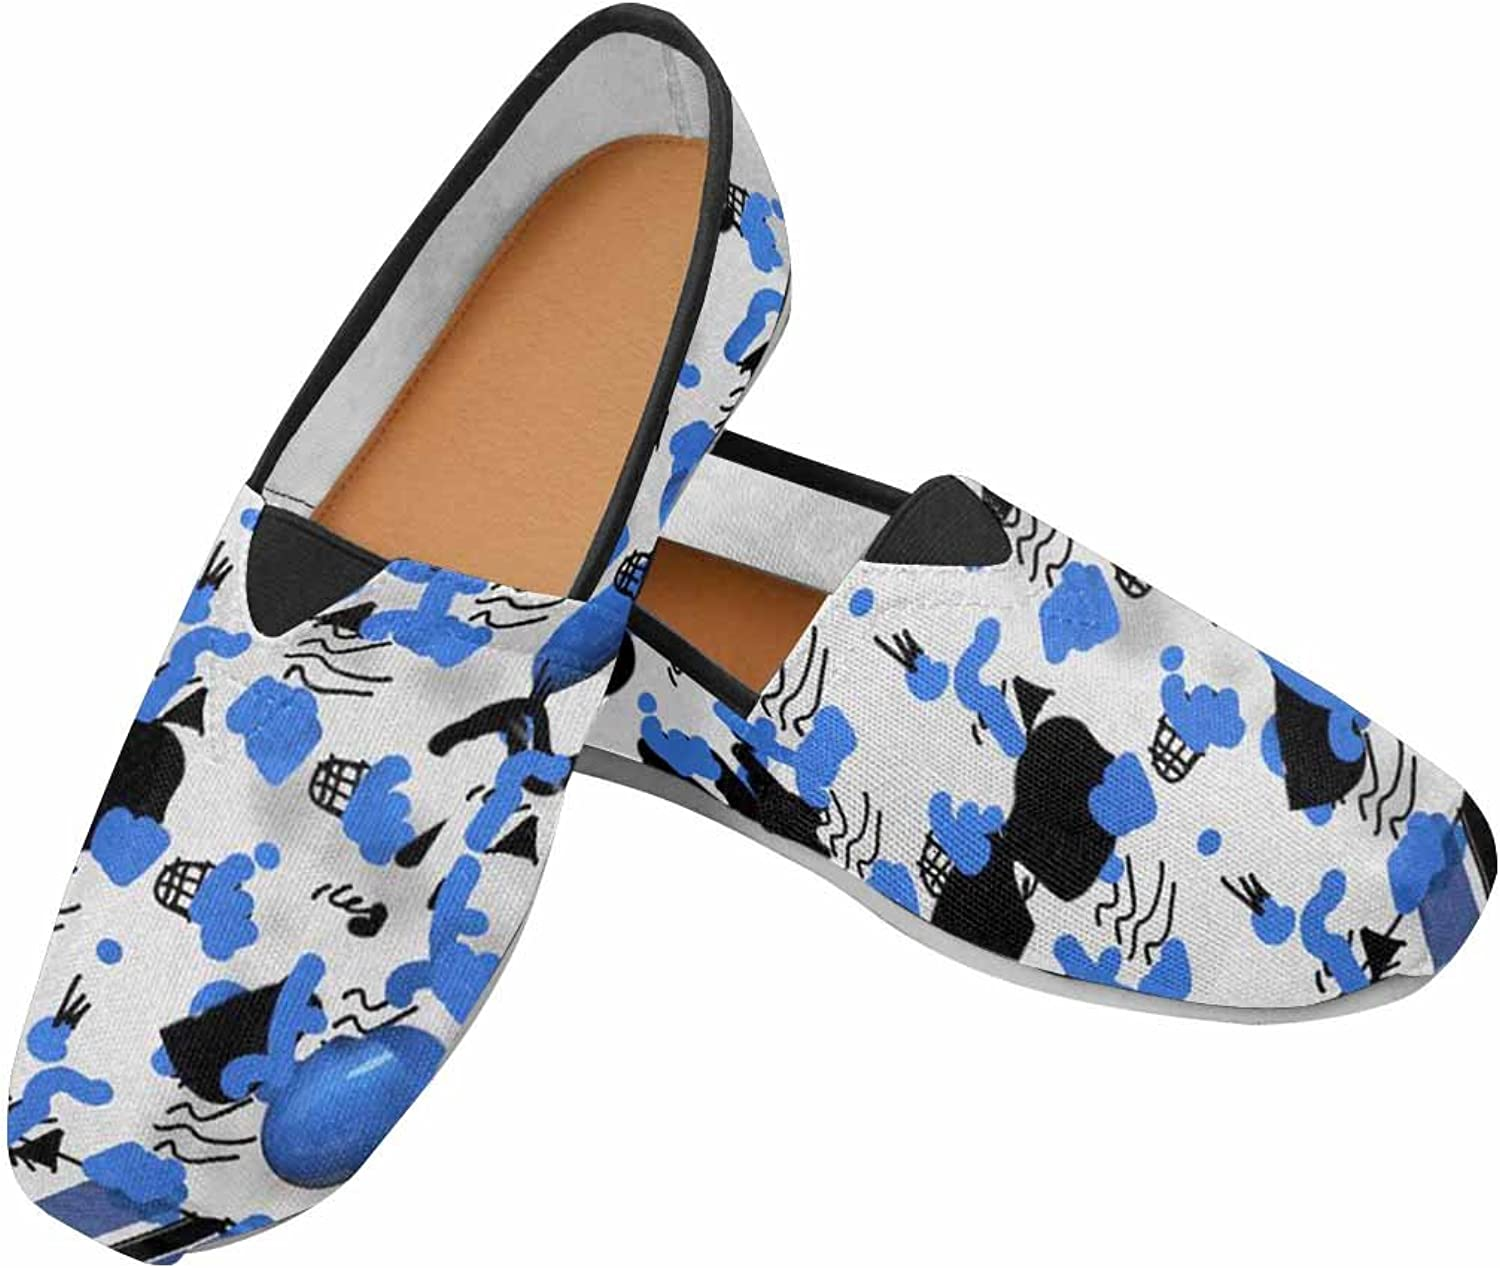 MingDe Sports Women's Casual Canvas Slip-On shoes